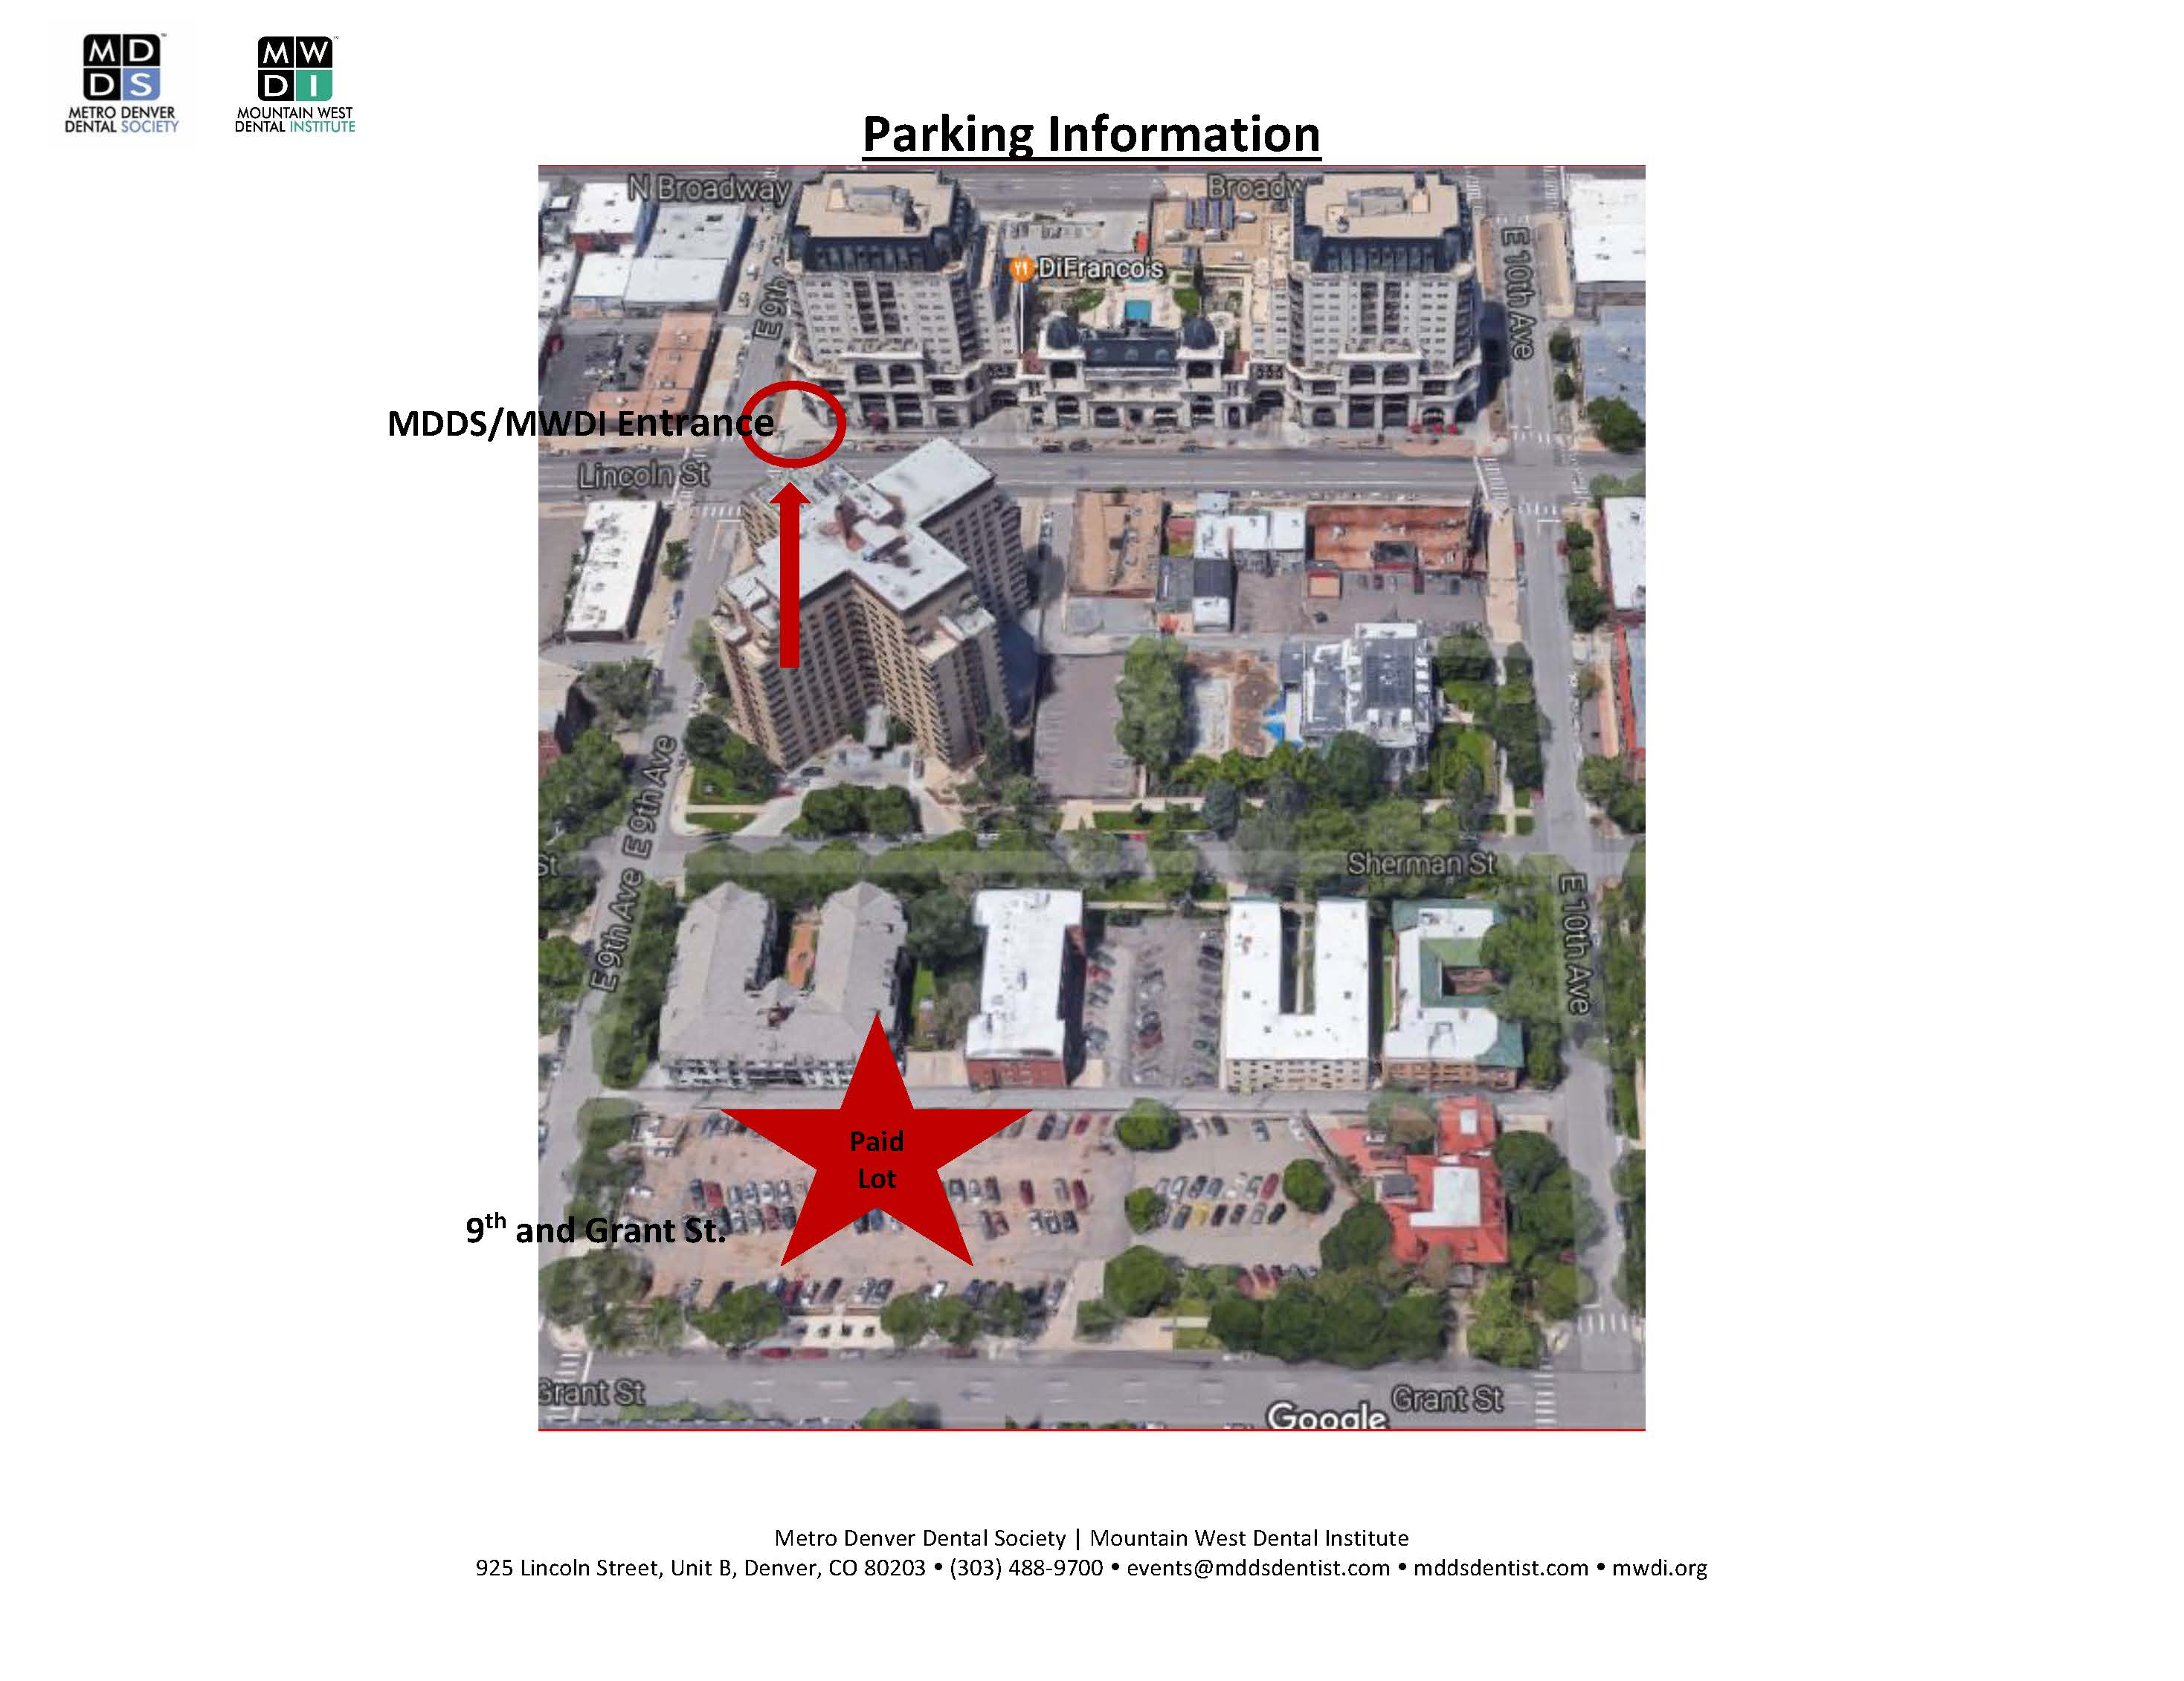 Mountain West Dental Institute (MWDI) Parking Map